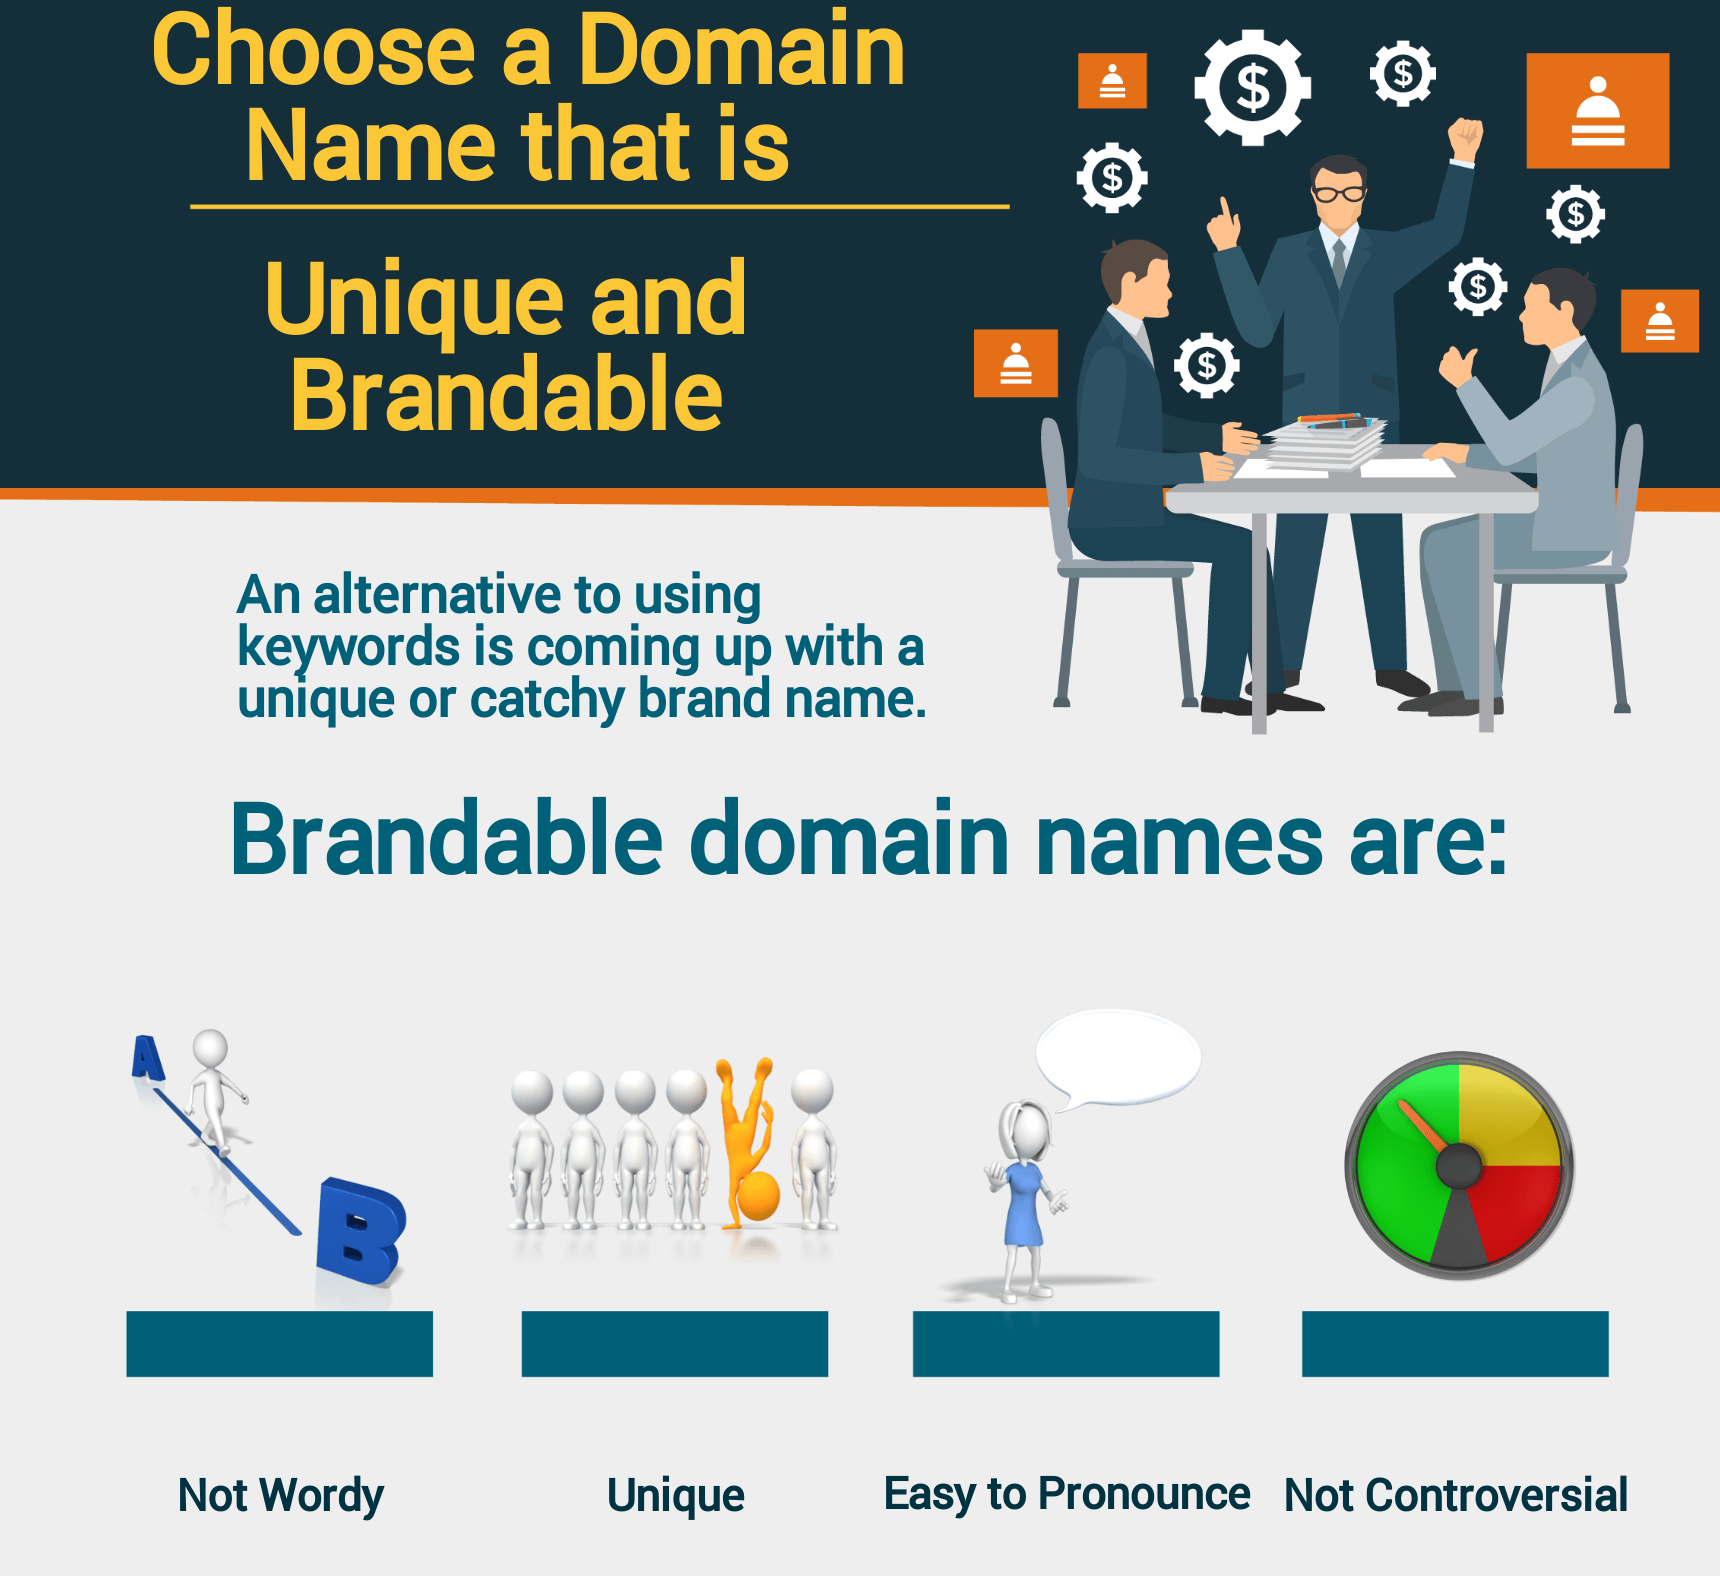 Choose a Domain Name that is Unique and Brandable